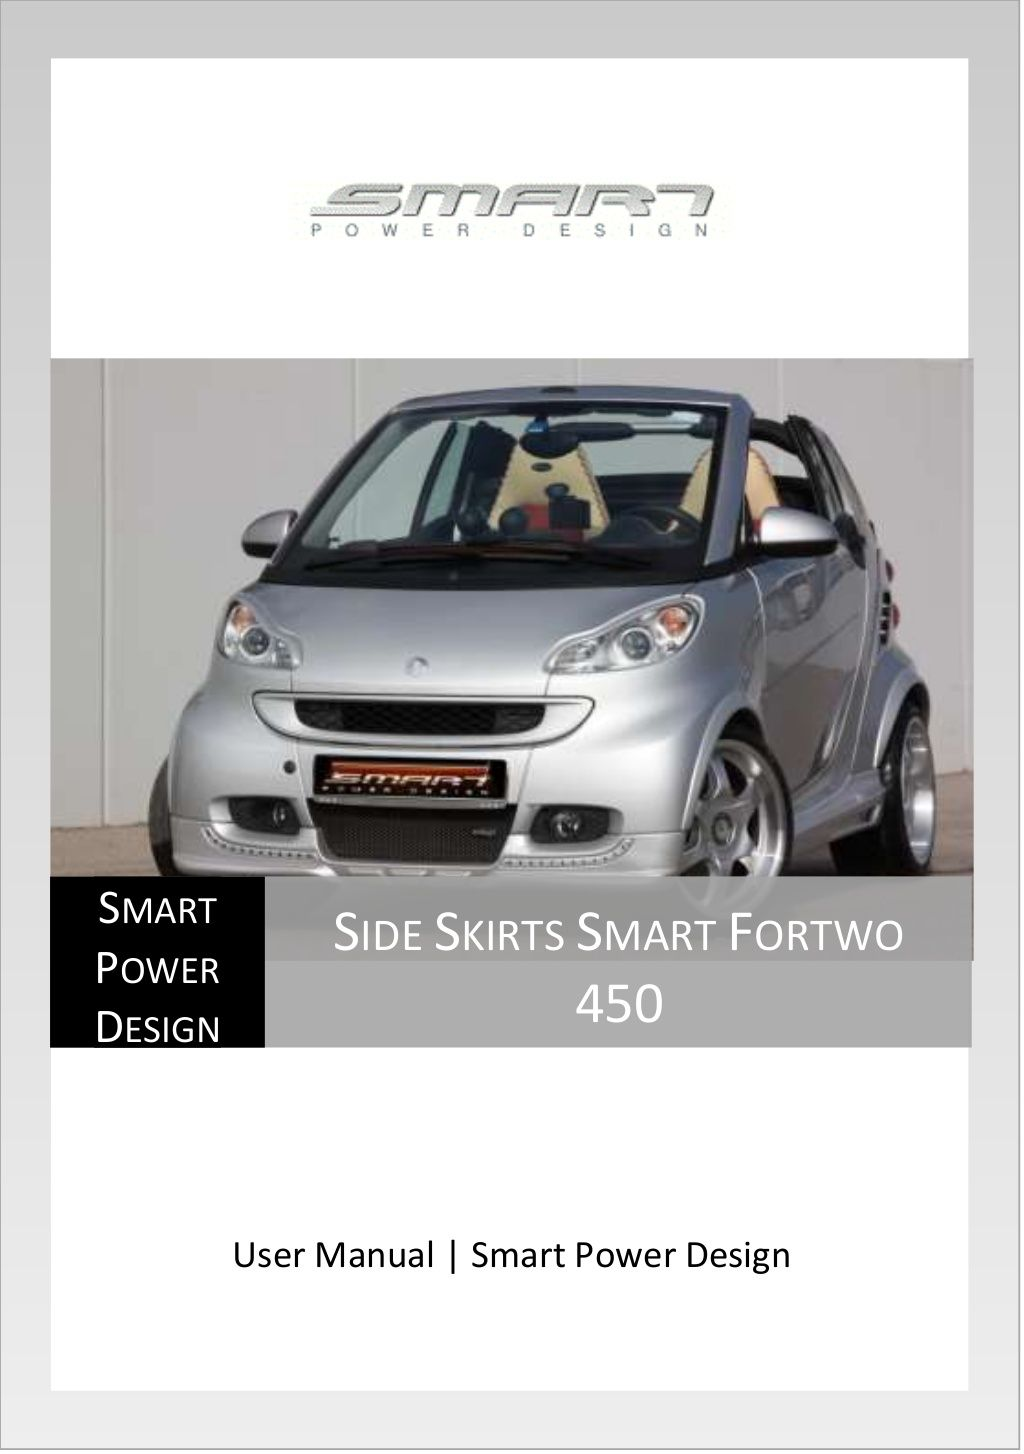 Side Skirts Smart Fortwo 450 User Manual by Smart Power Design via  slideshare. It's compatible